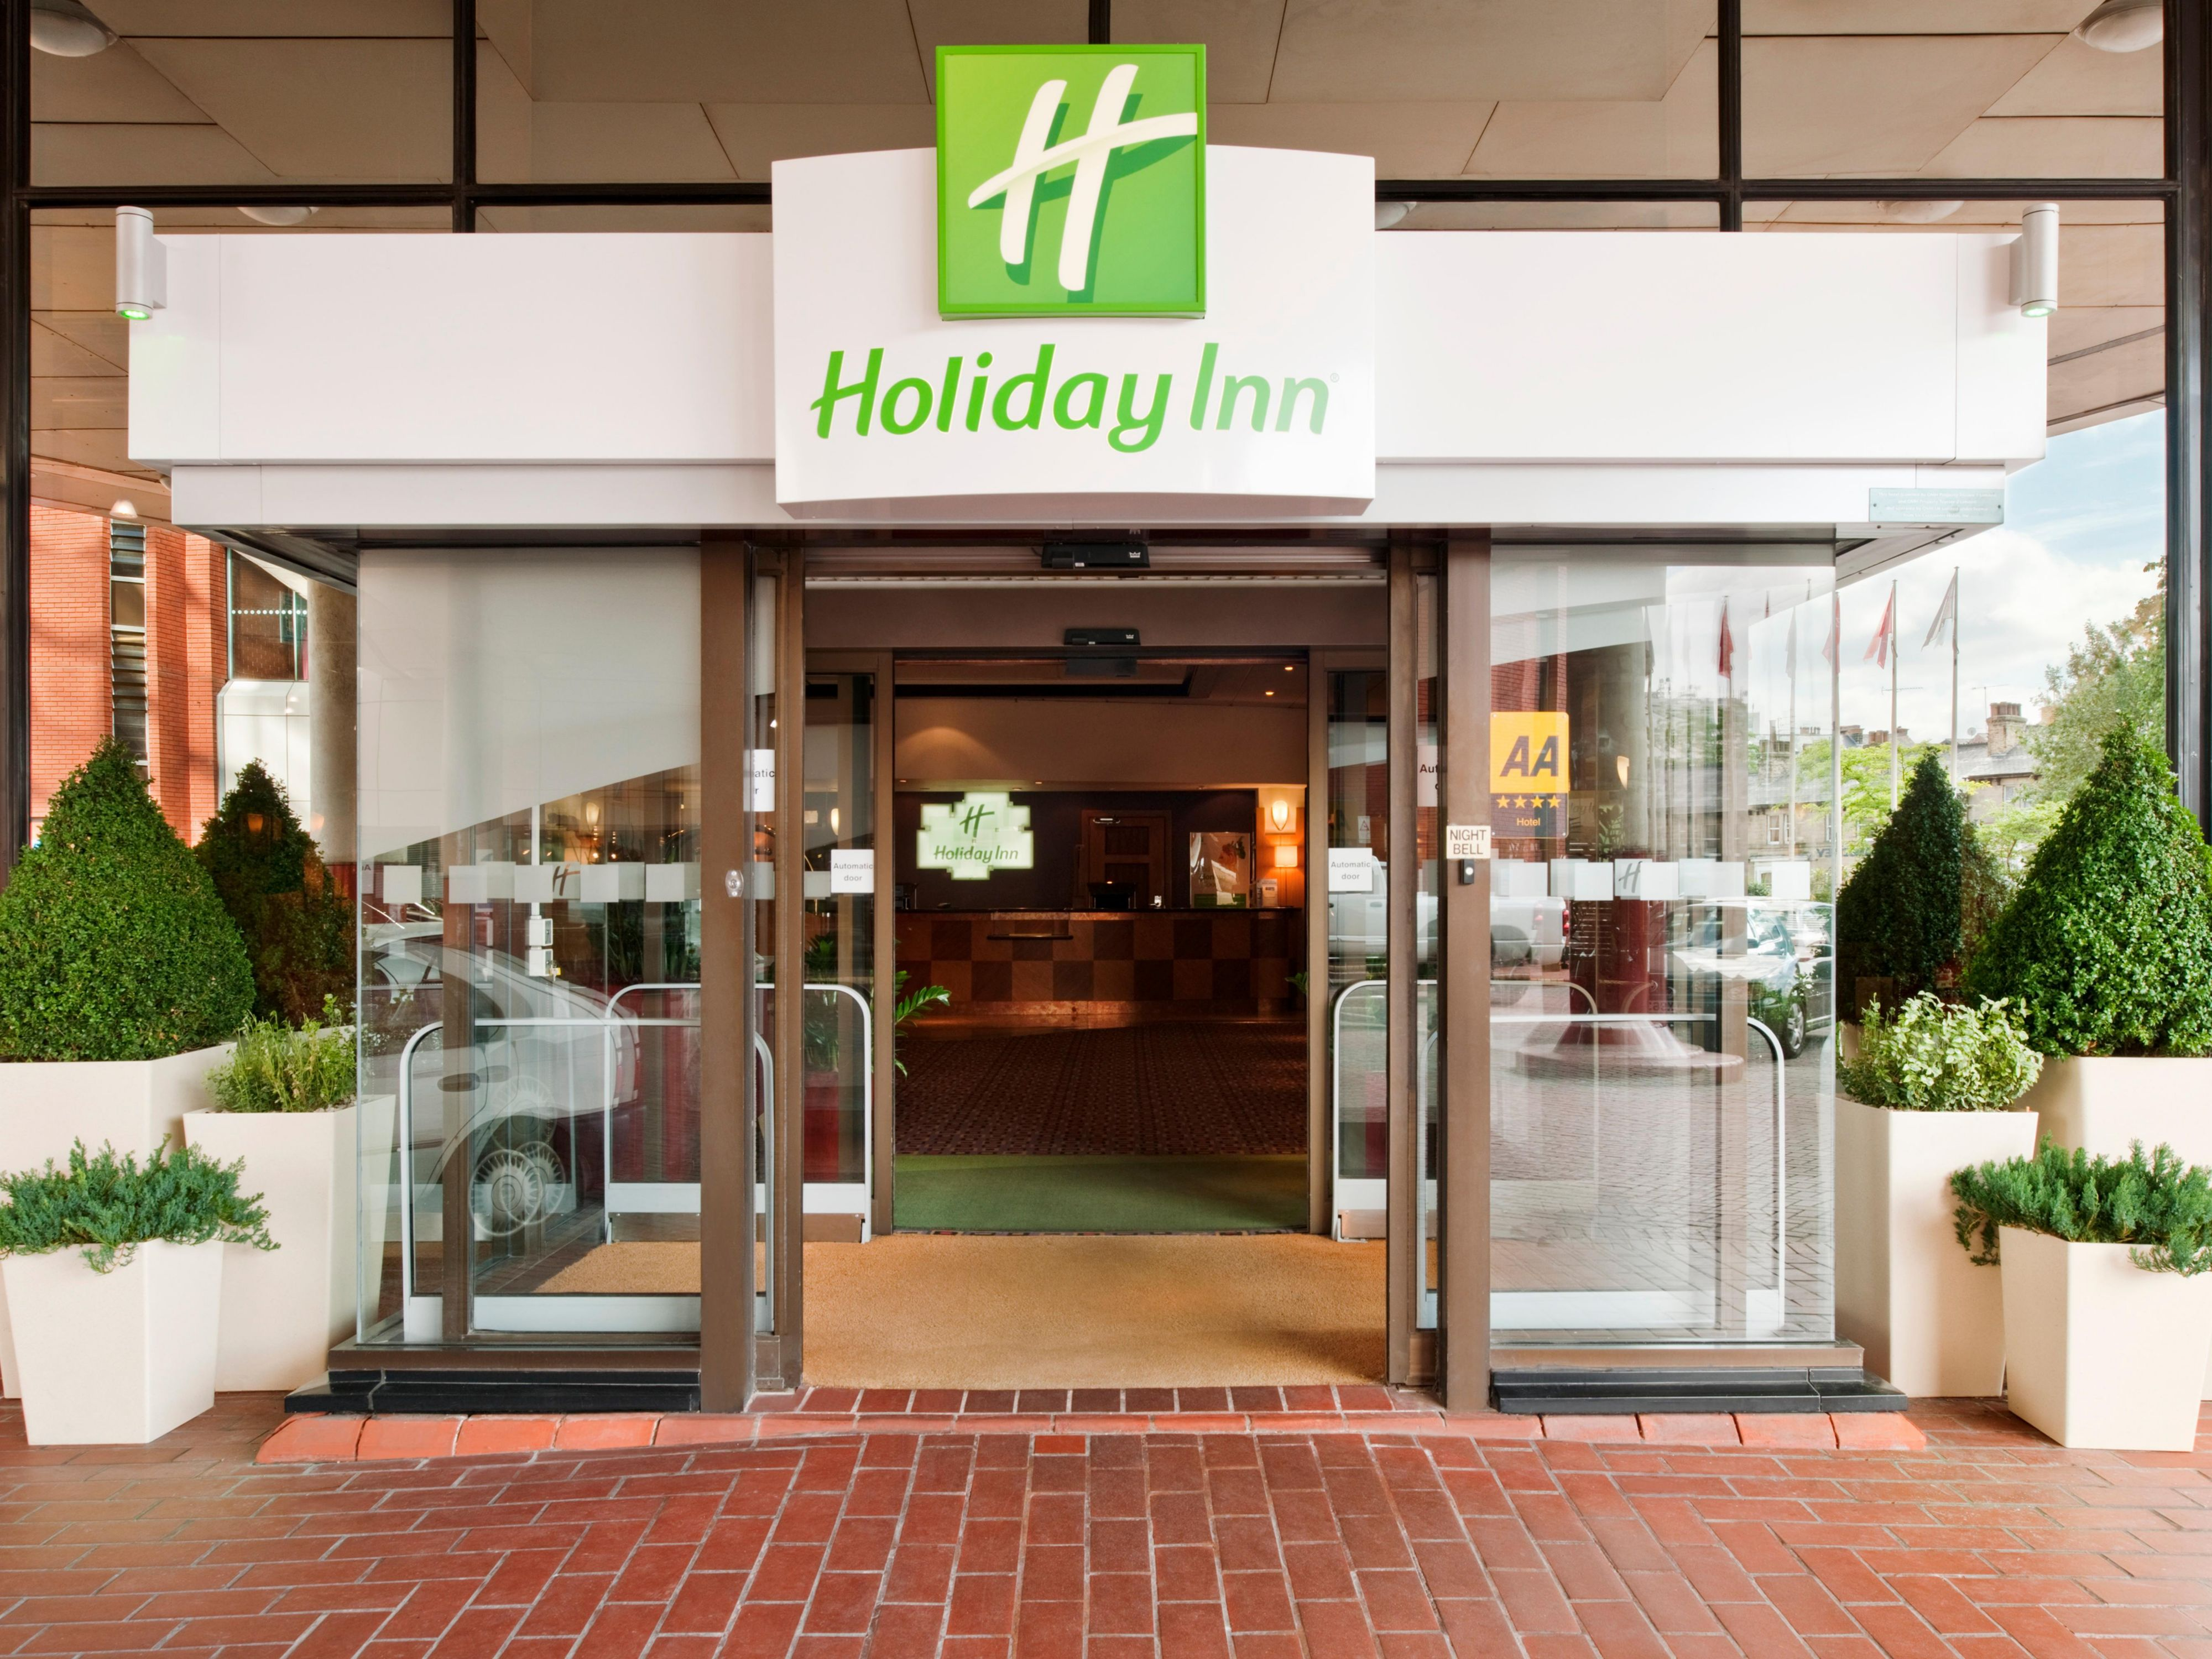 Entrance - Holiday Inn Harrogate